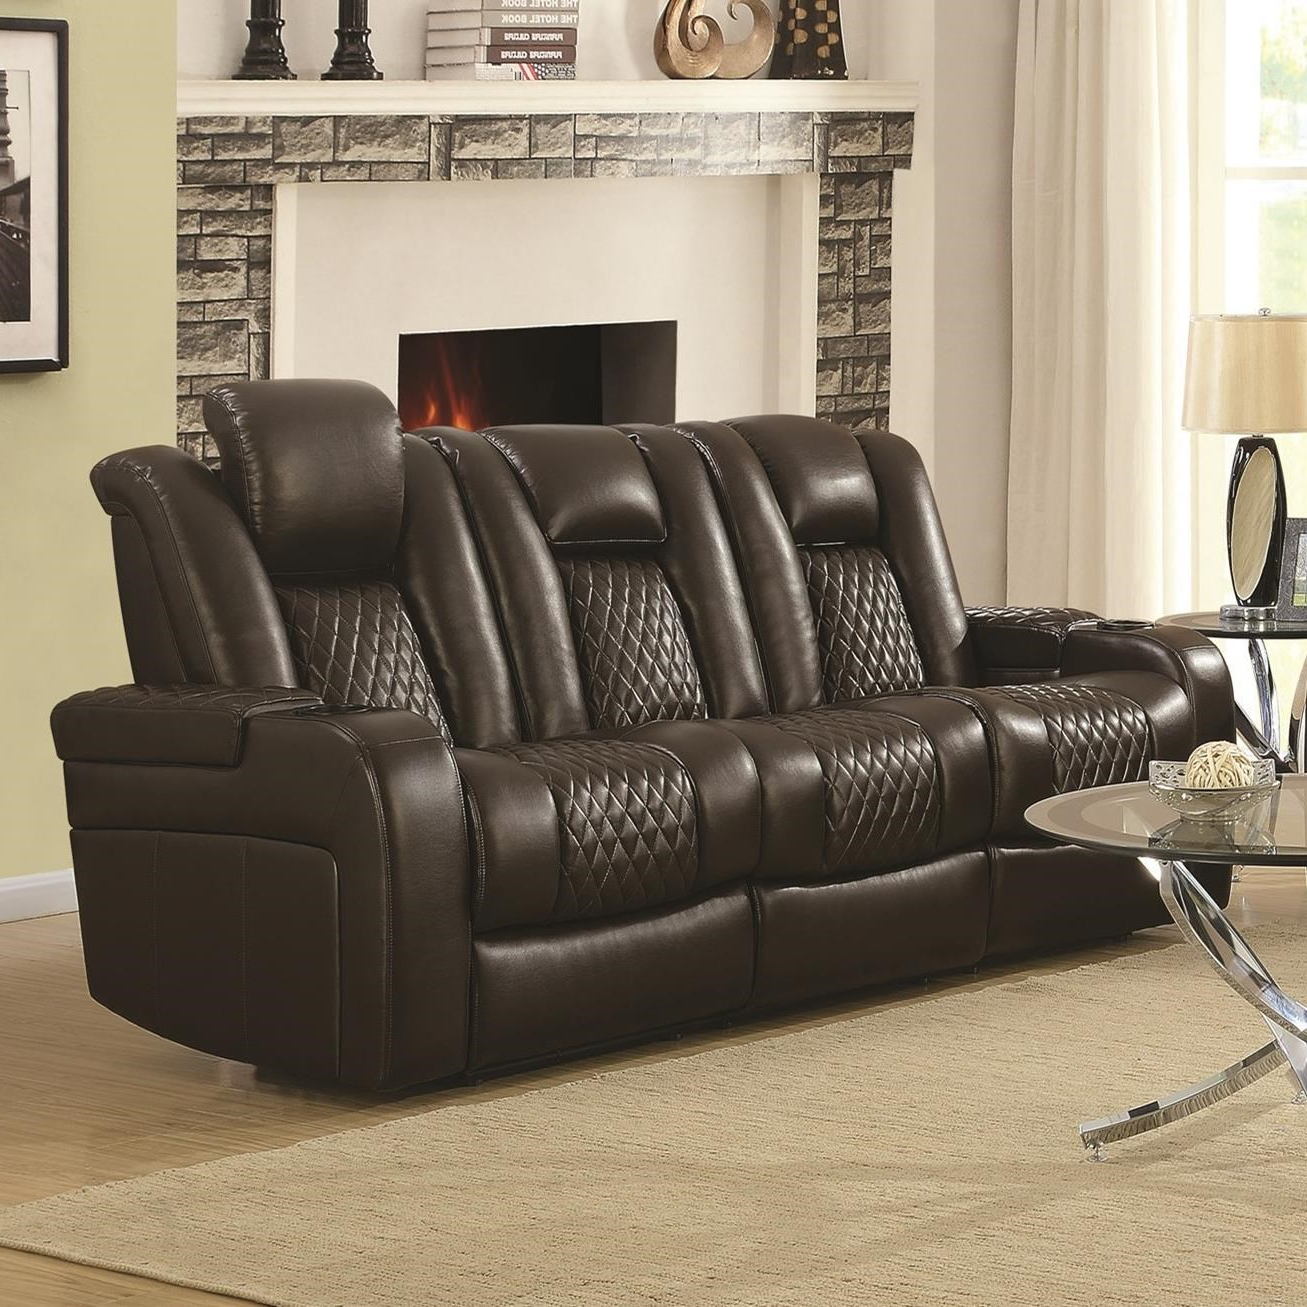 Recent Expedition Brown Power Reclining Sofas With Delangelo Casual Power Reclining Sofa With Cup Holders (View 8 of 15)